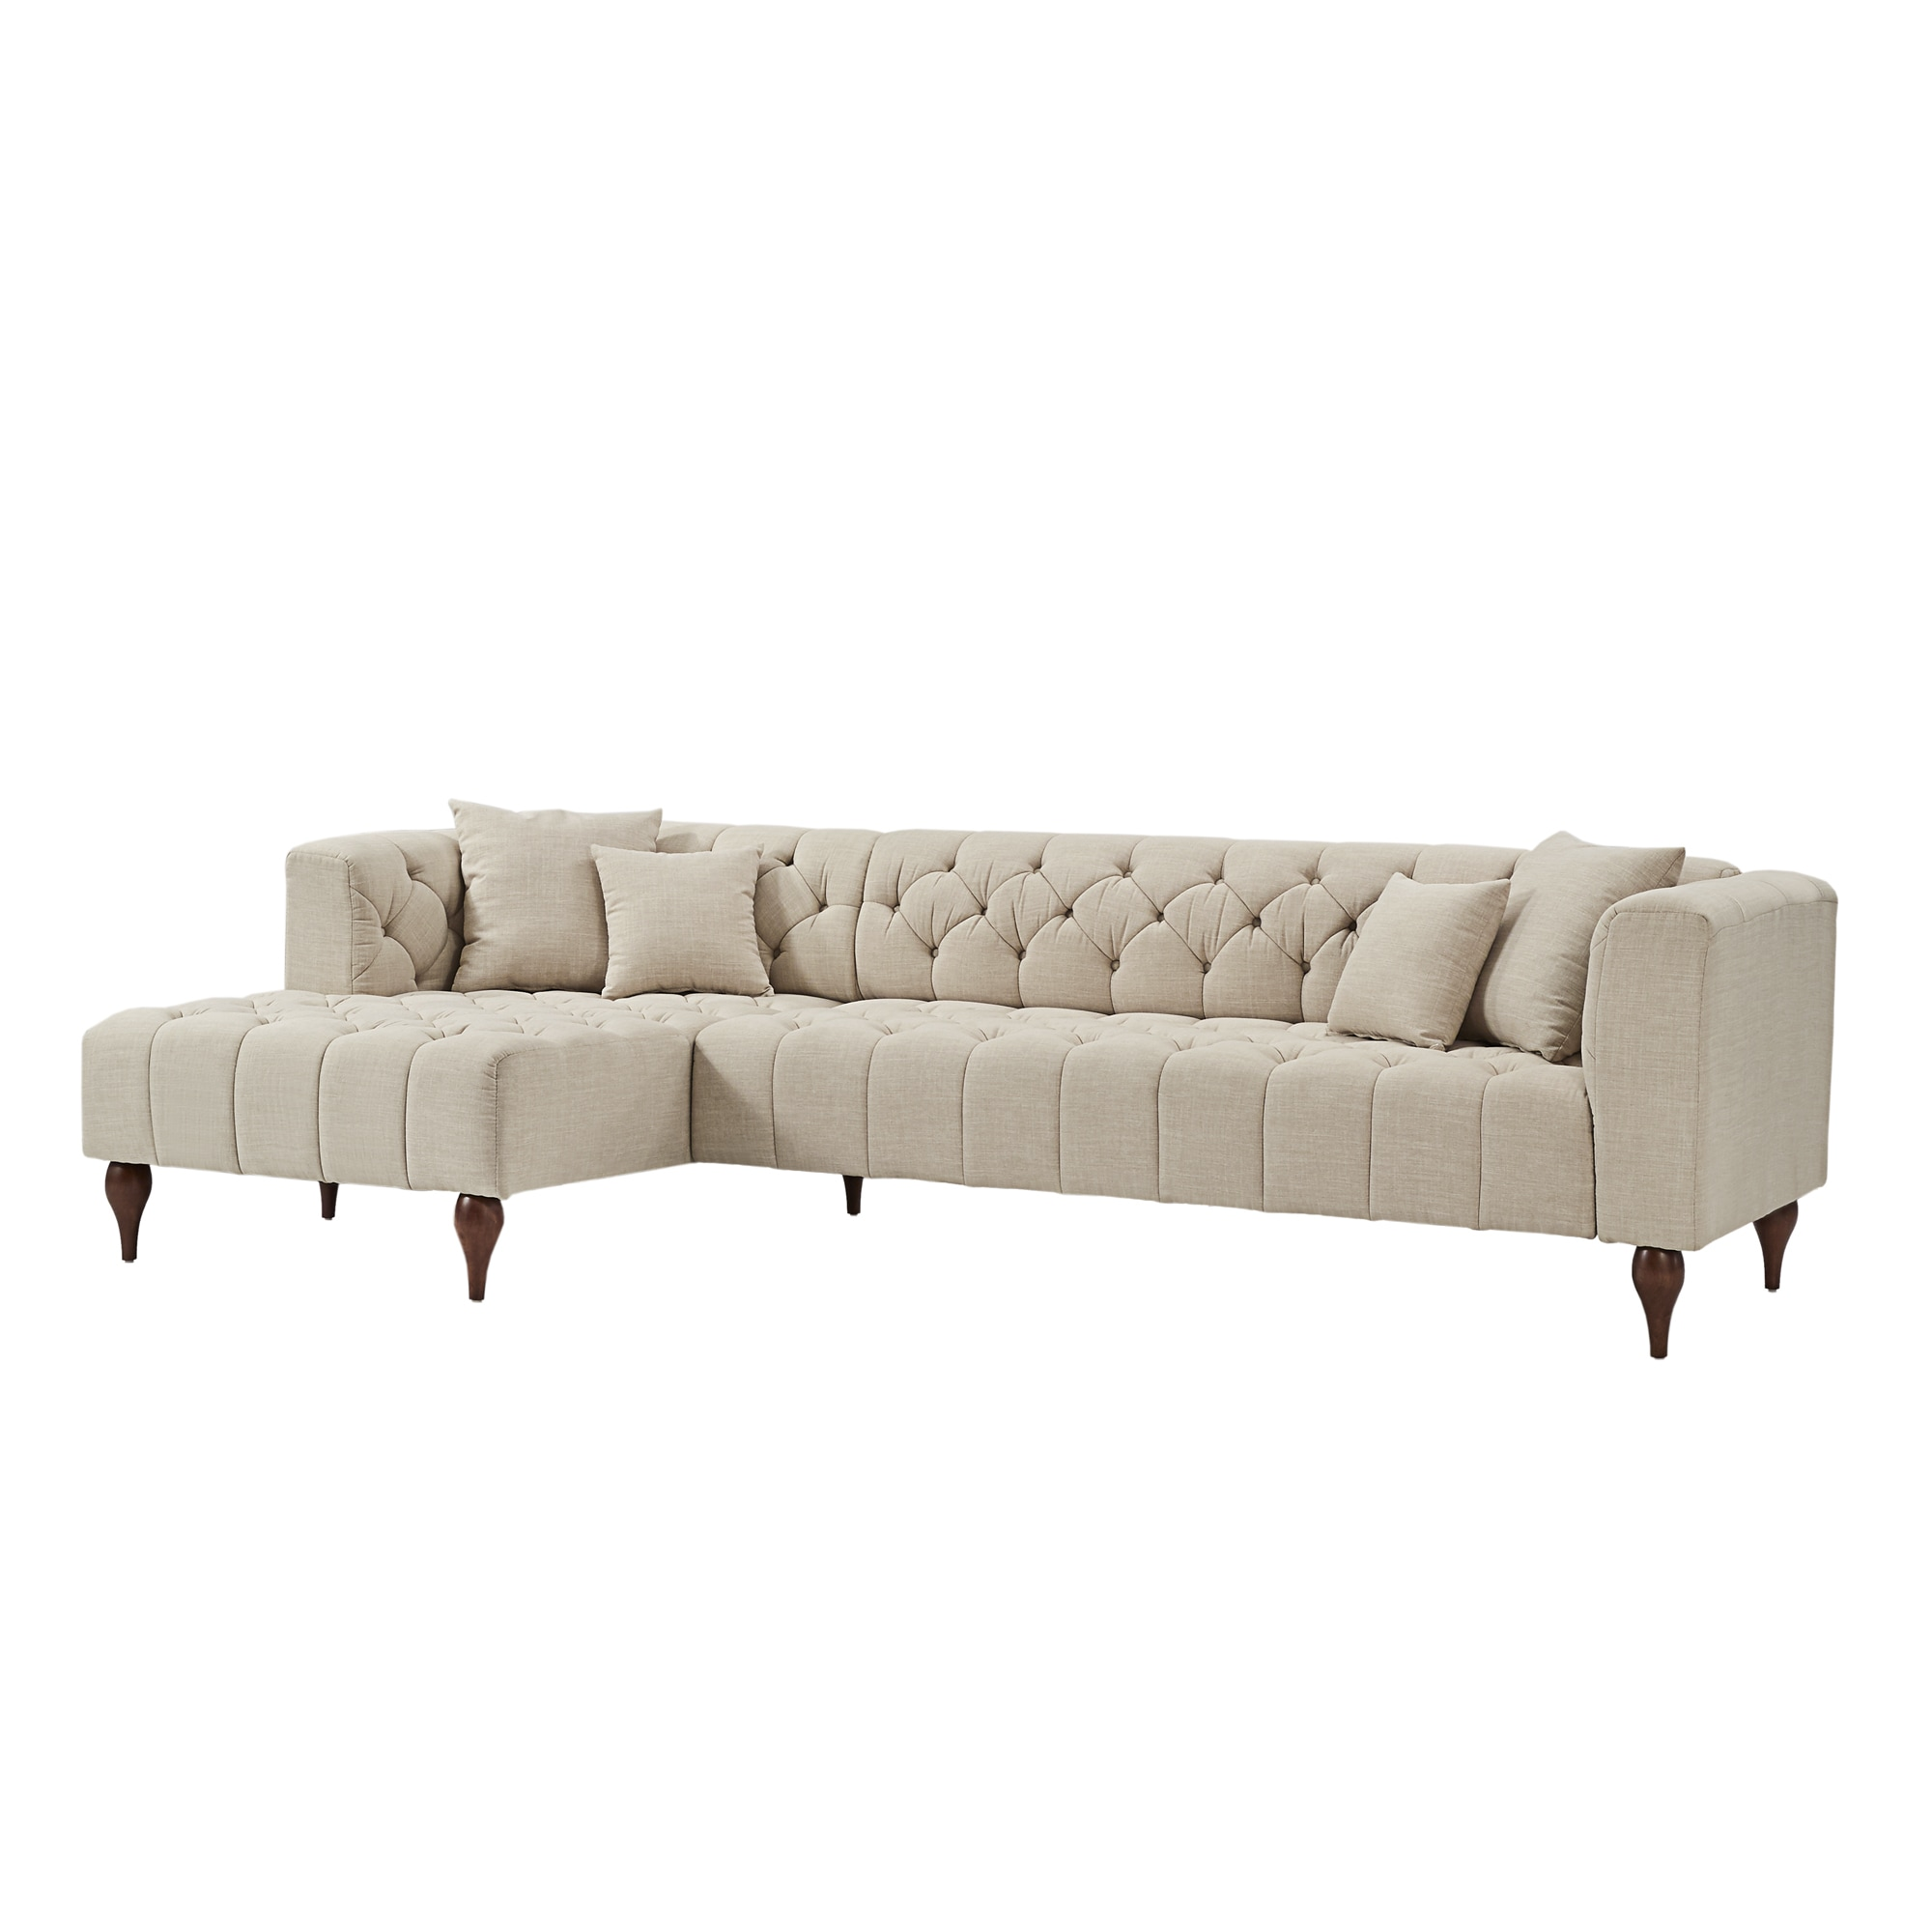 shop danise tufted linen upholstered tuxedo arm 4 seat sofa and rh overstock com